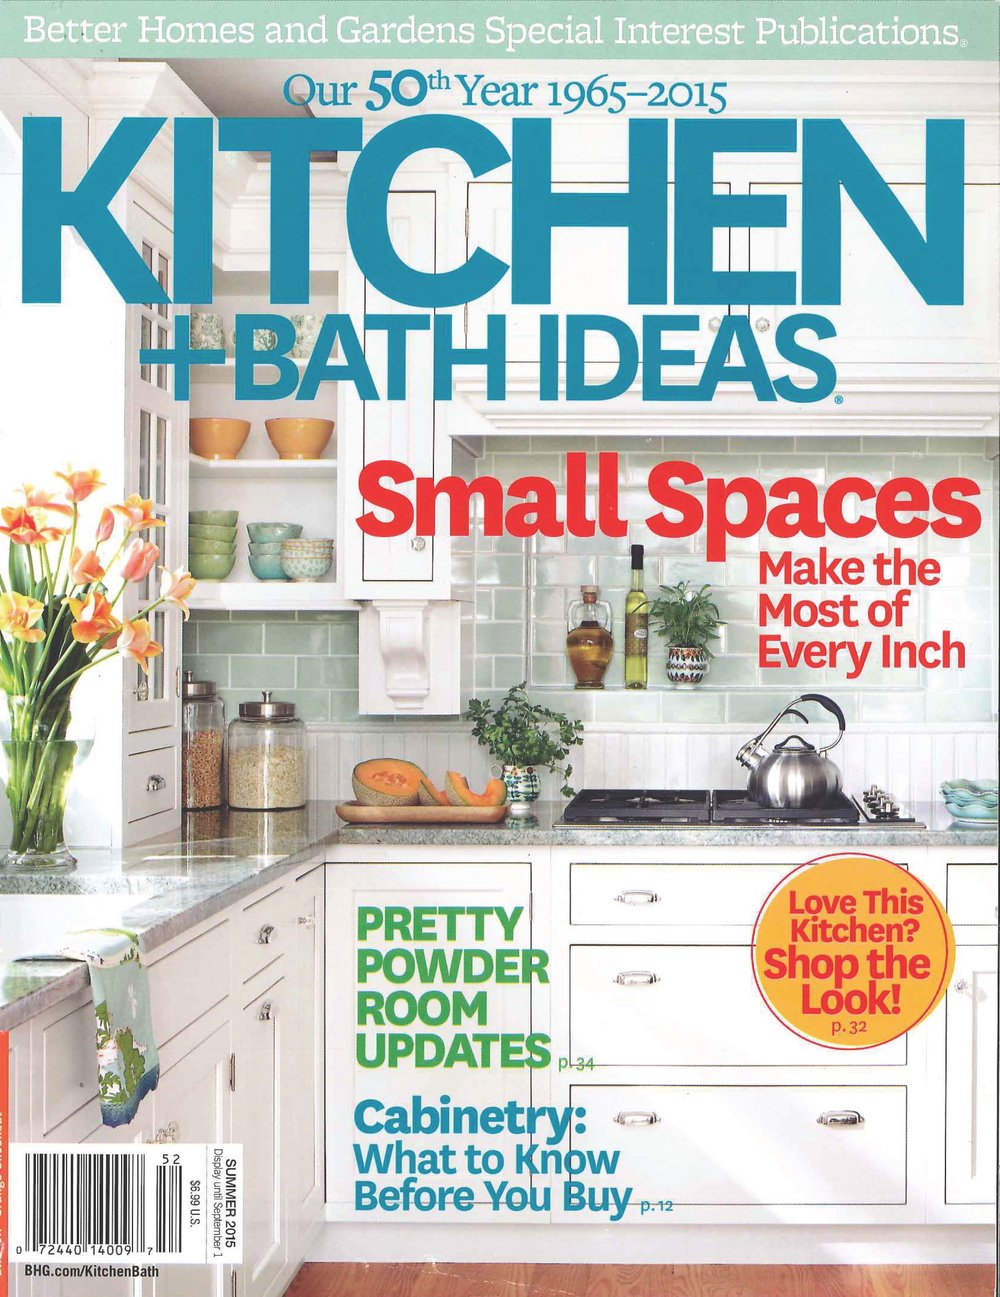 11 Better Homes and Gardens Summer 2015_Page_1.jpg